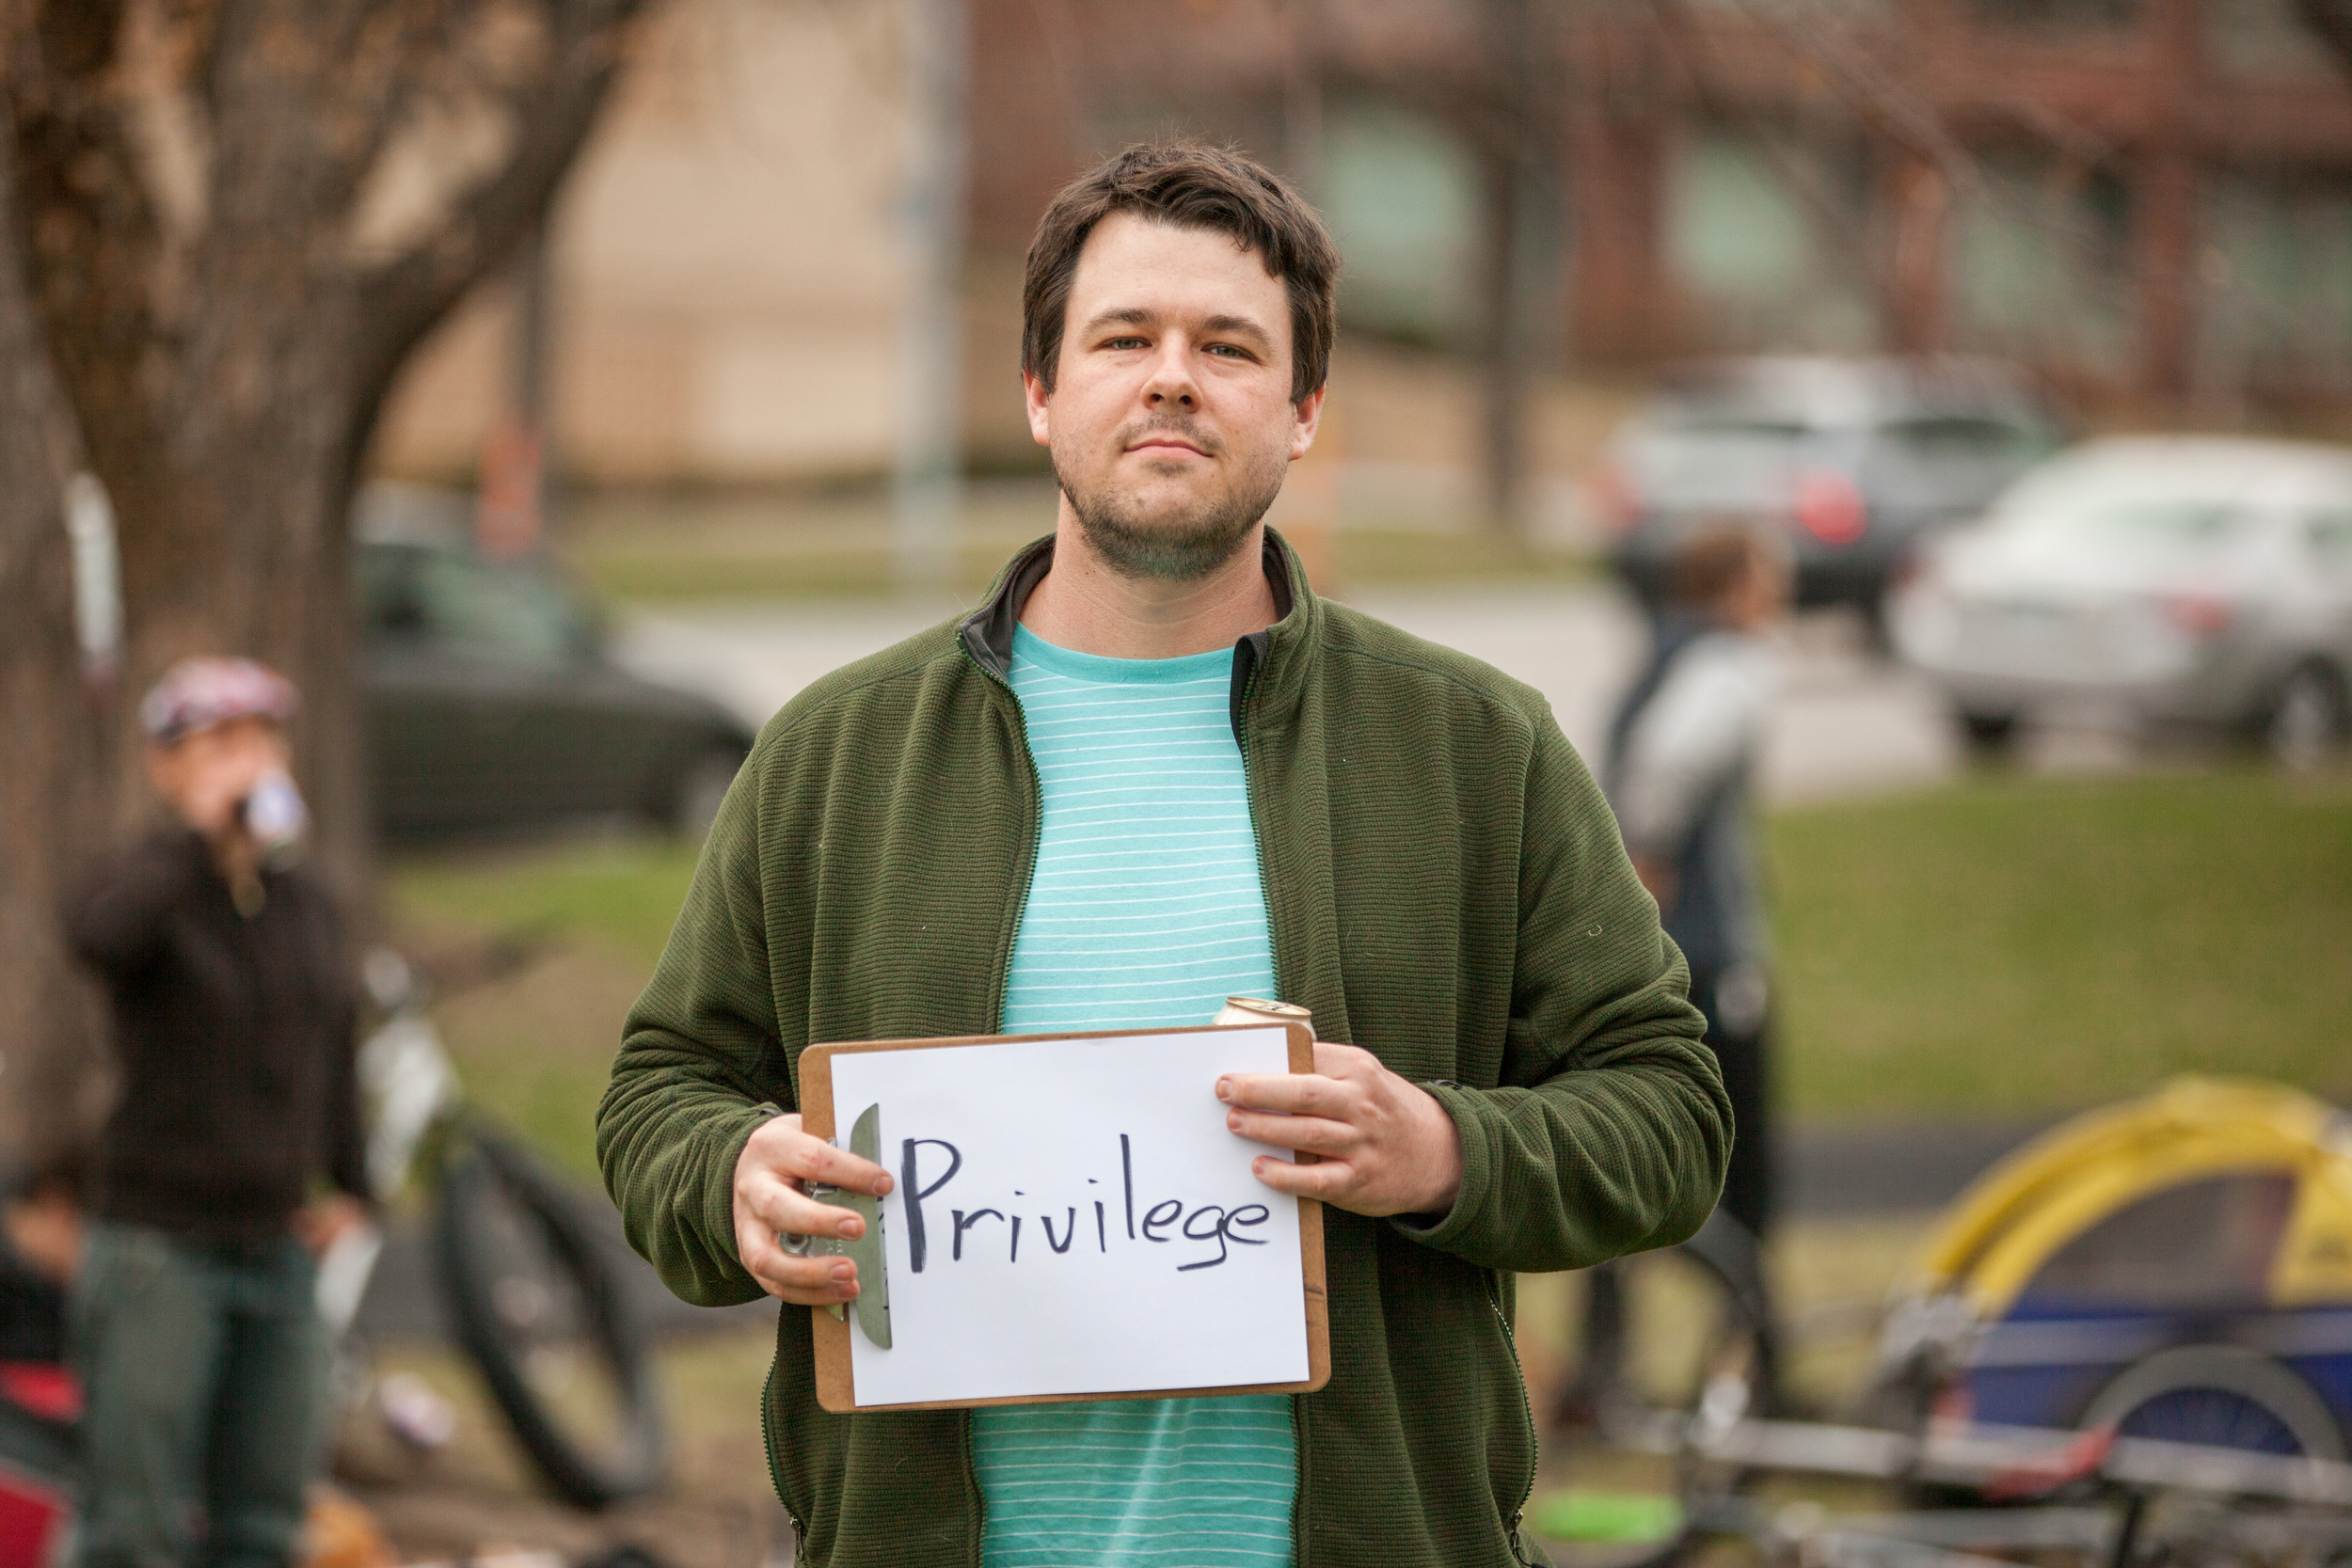 Man holding a sign saying privilege.